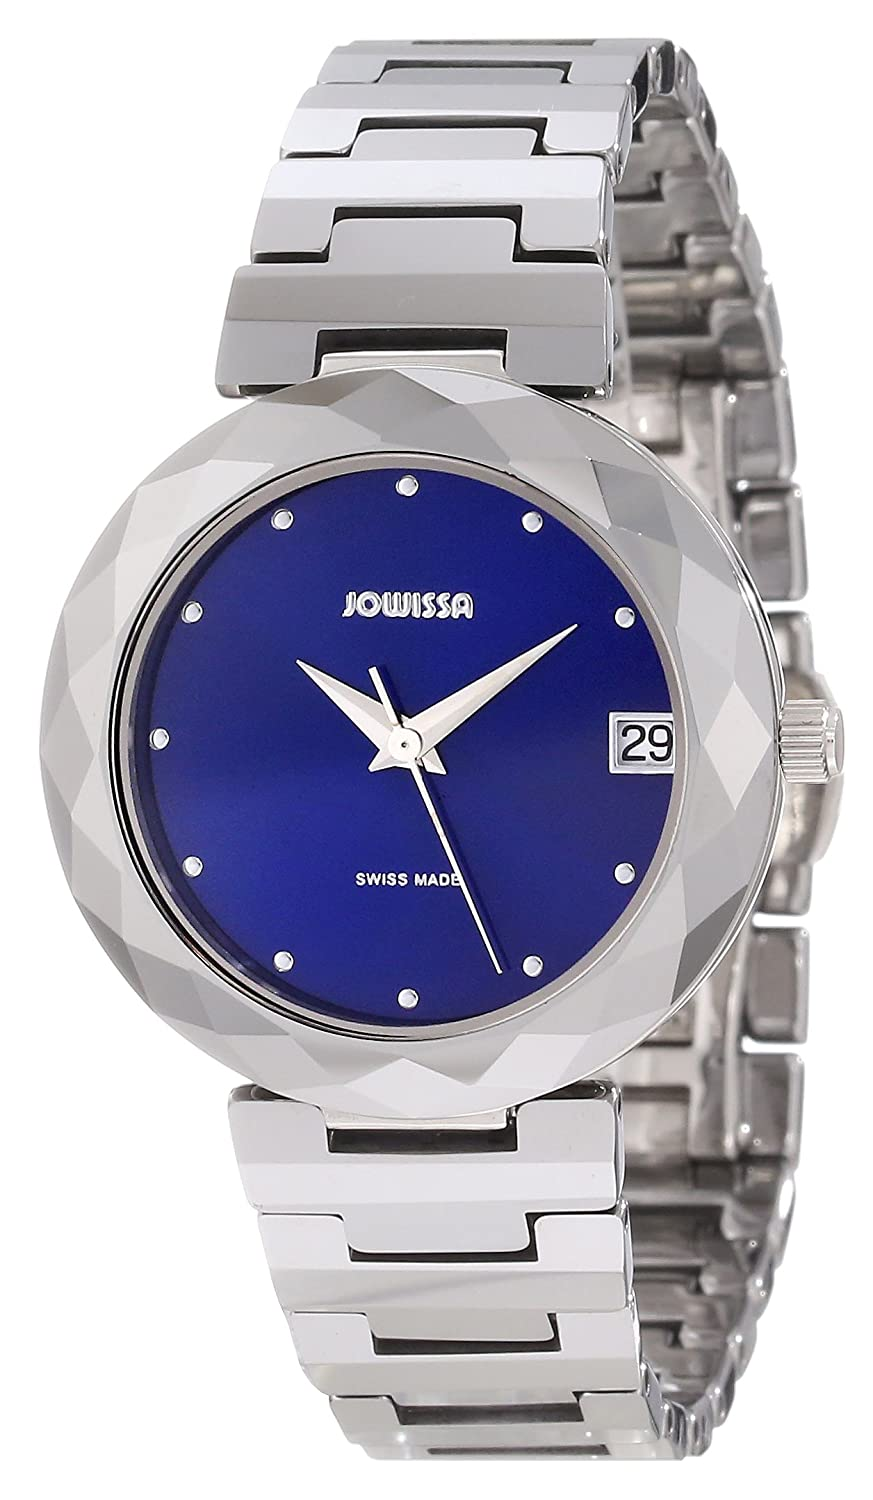 81f175566 Jowissa Soletta Women's Quartz Watch with Blue Dial Analogue Display and  Silver Tungsten Bracelet J1.175.M: Amazon.co.uk: Watches